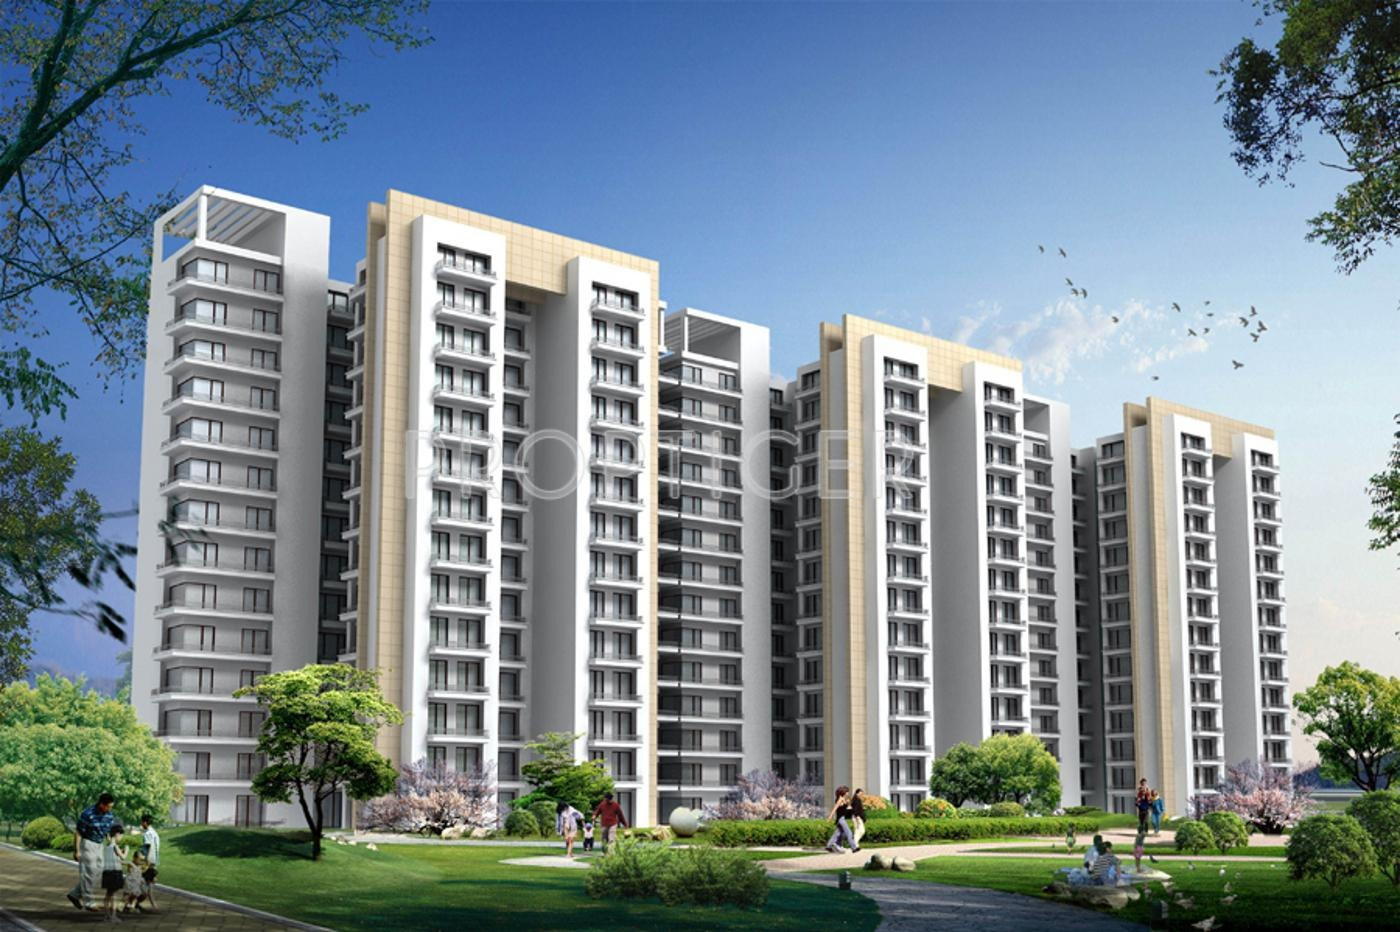 3983 sq ft 4 BHK Floor Plan Image - Bestech Park View Spa ...